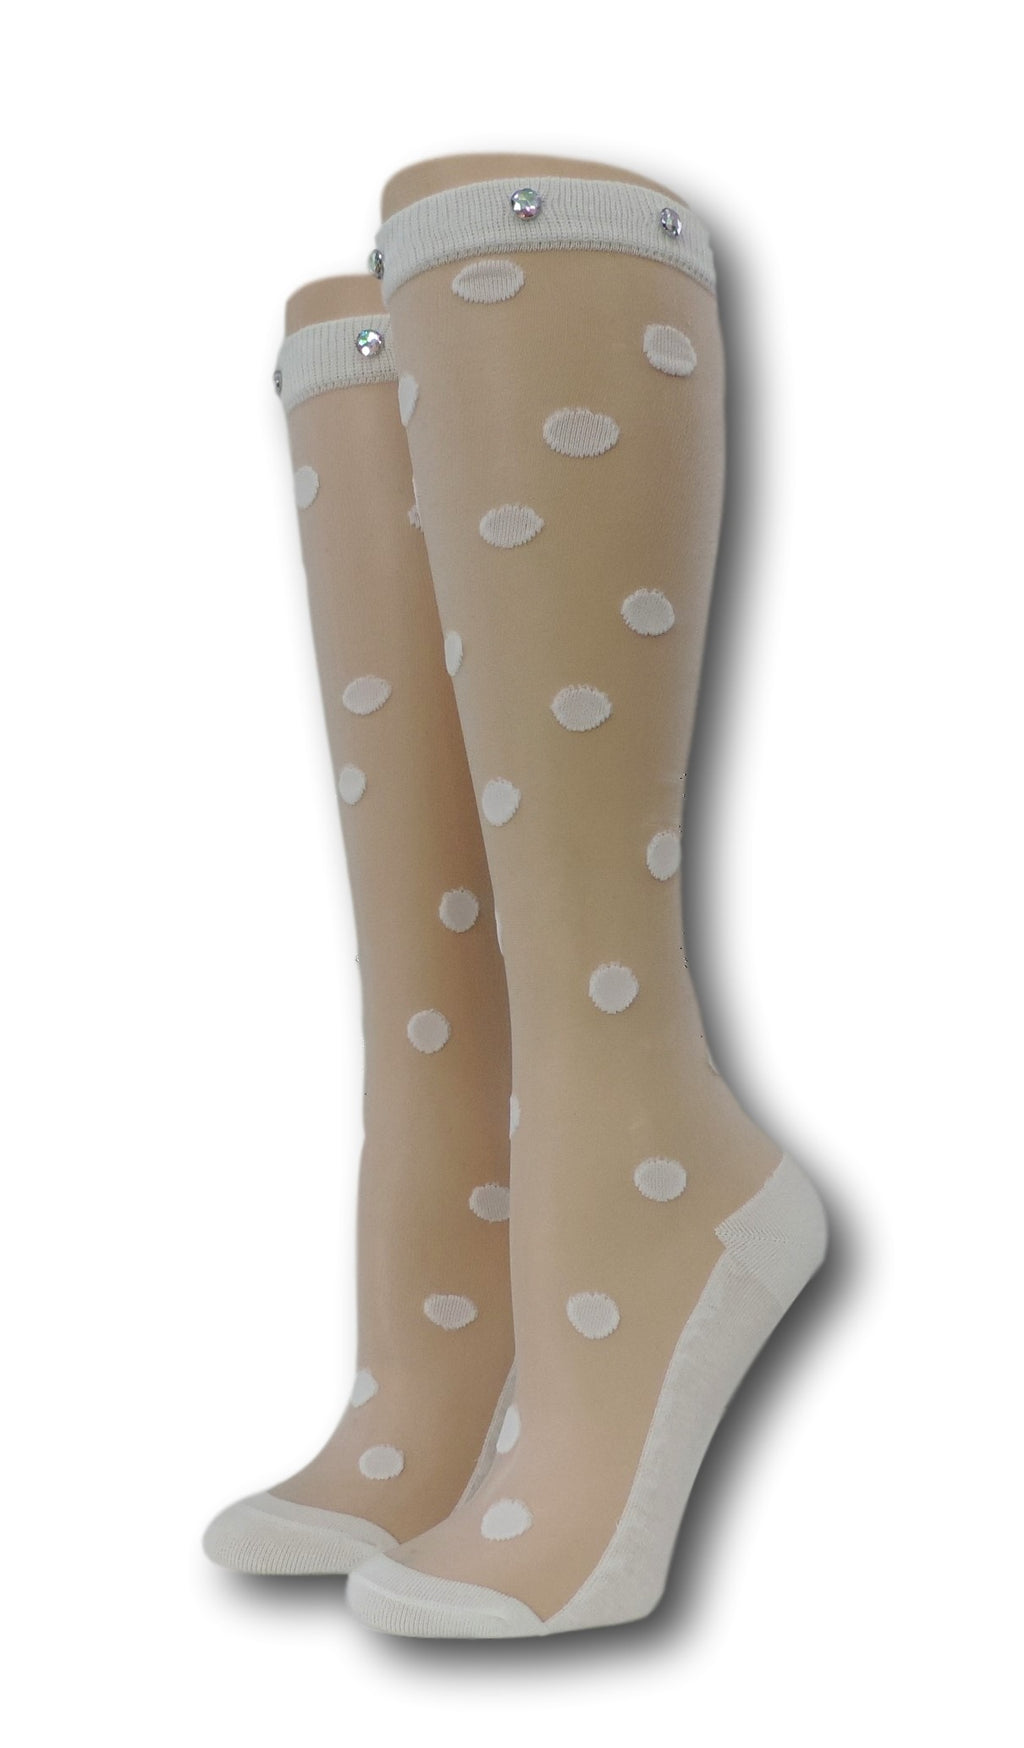 White Polka Knee High Sheer Socks with beads